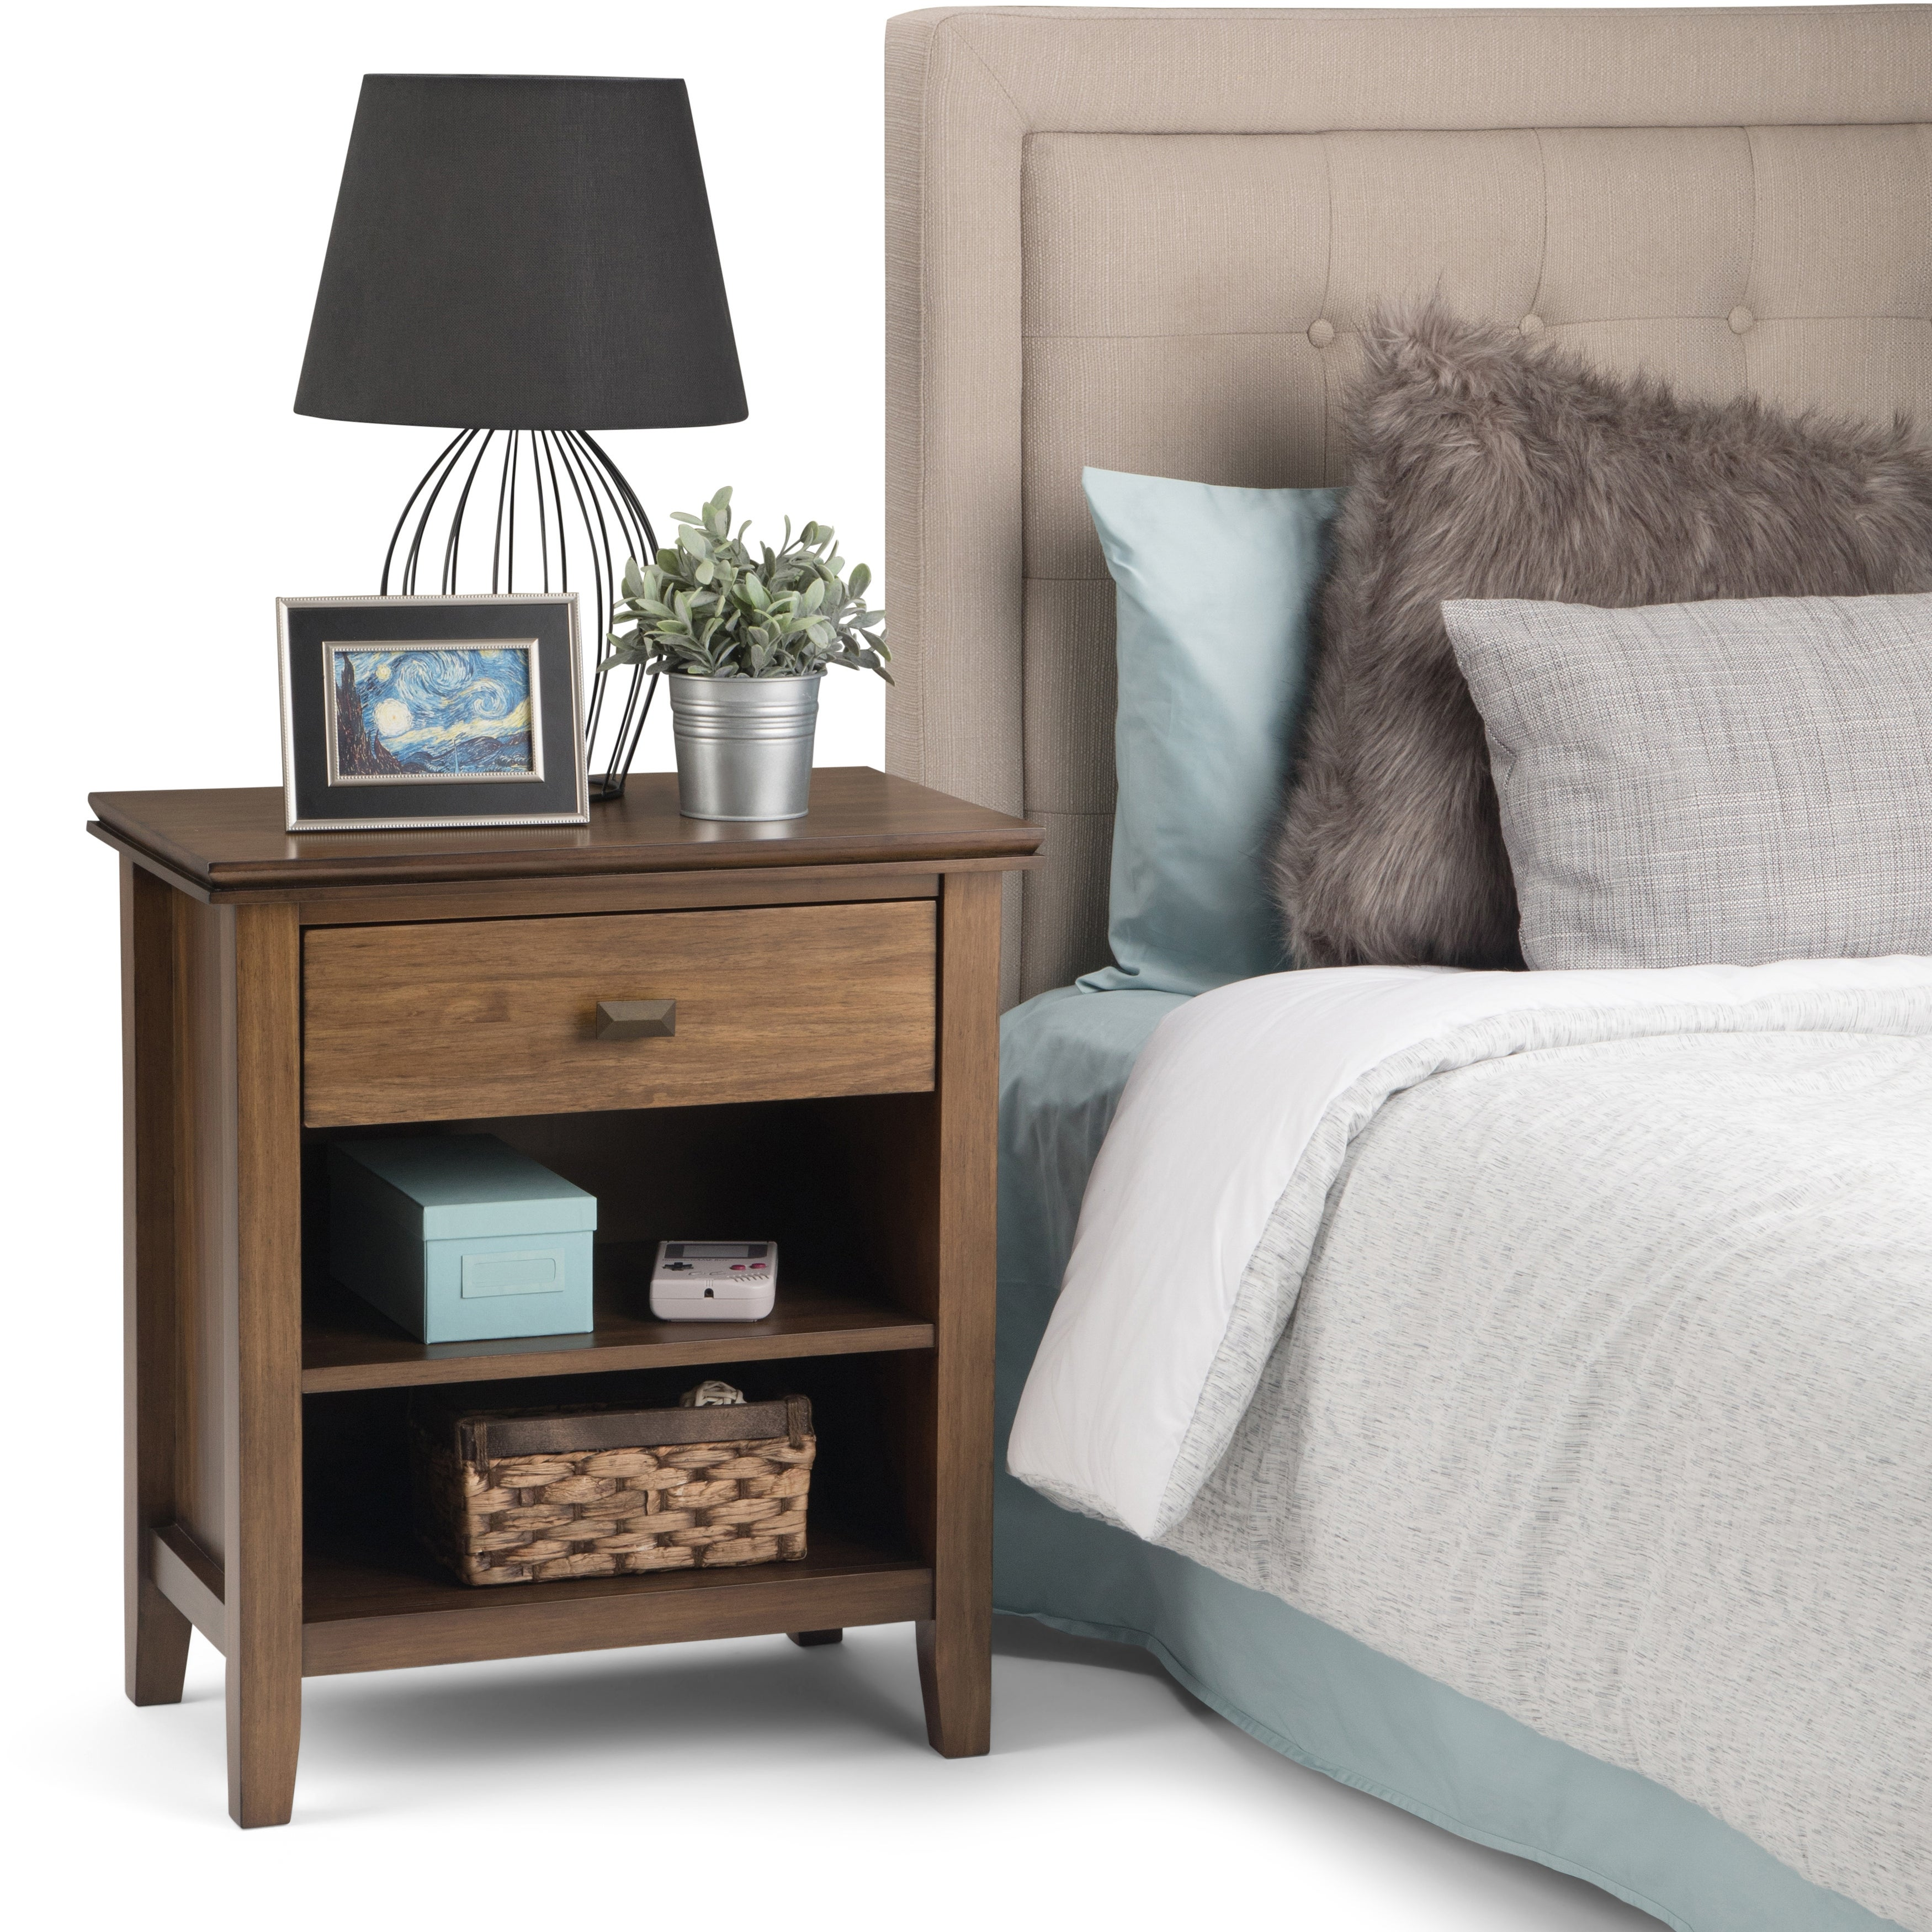 Wyndenhall Stratford Solid Wood 24 Inch Wide Contemporary Bedside Nightstand Table On Sale Overstock 10581728